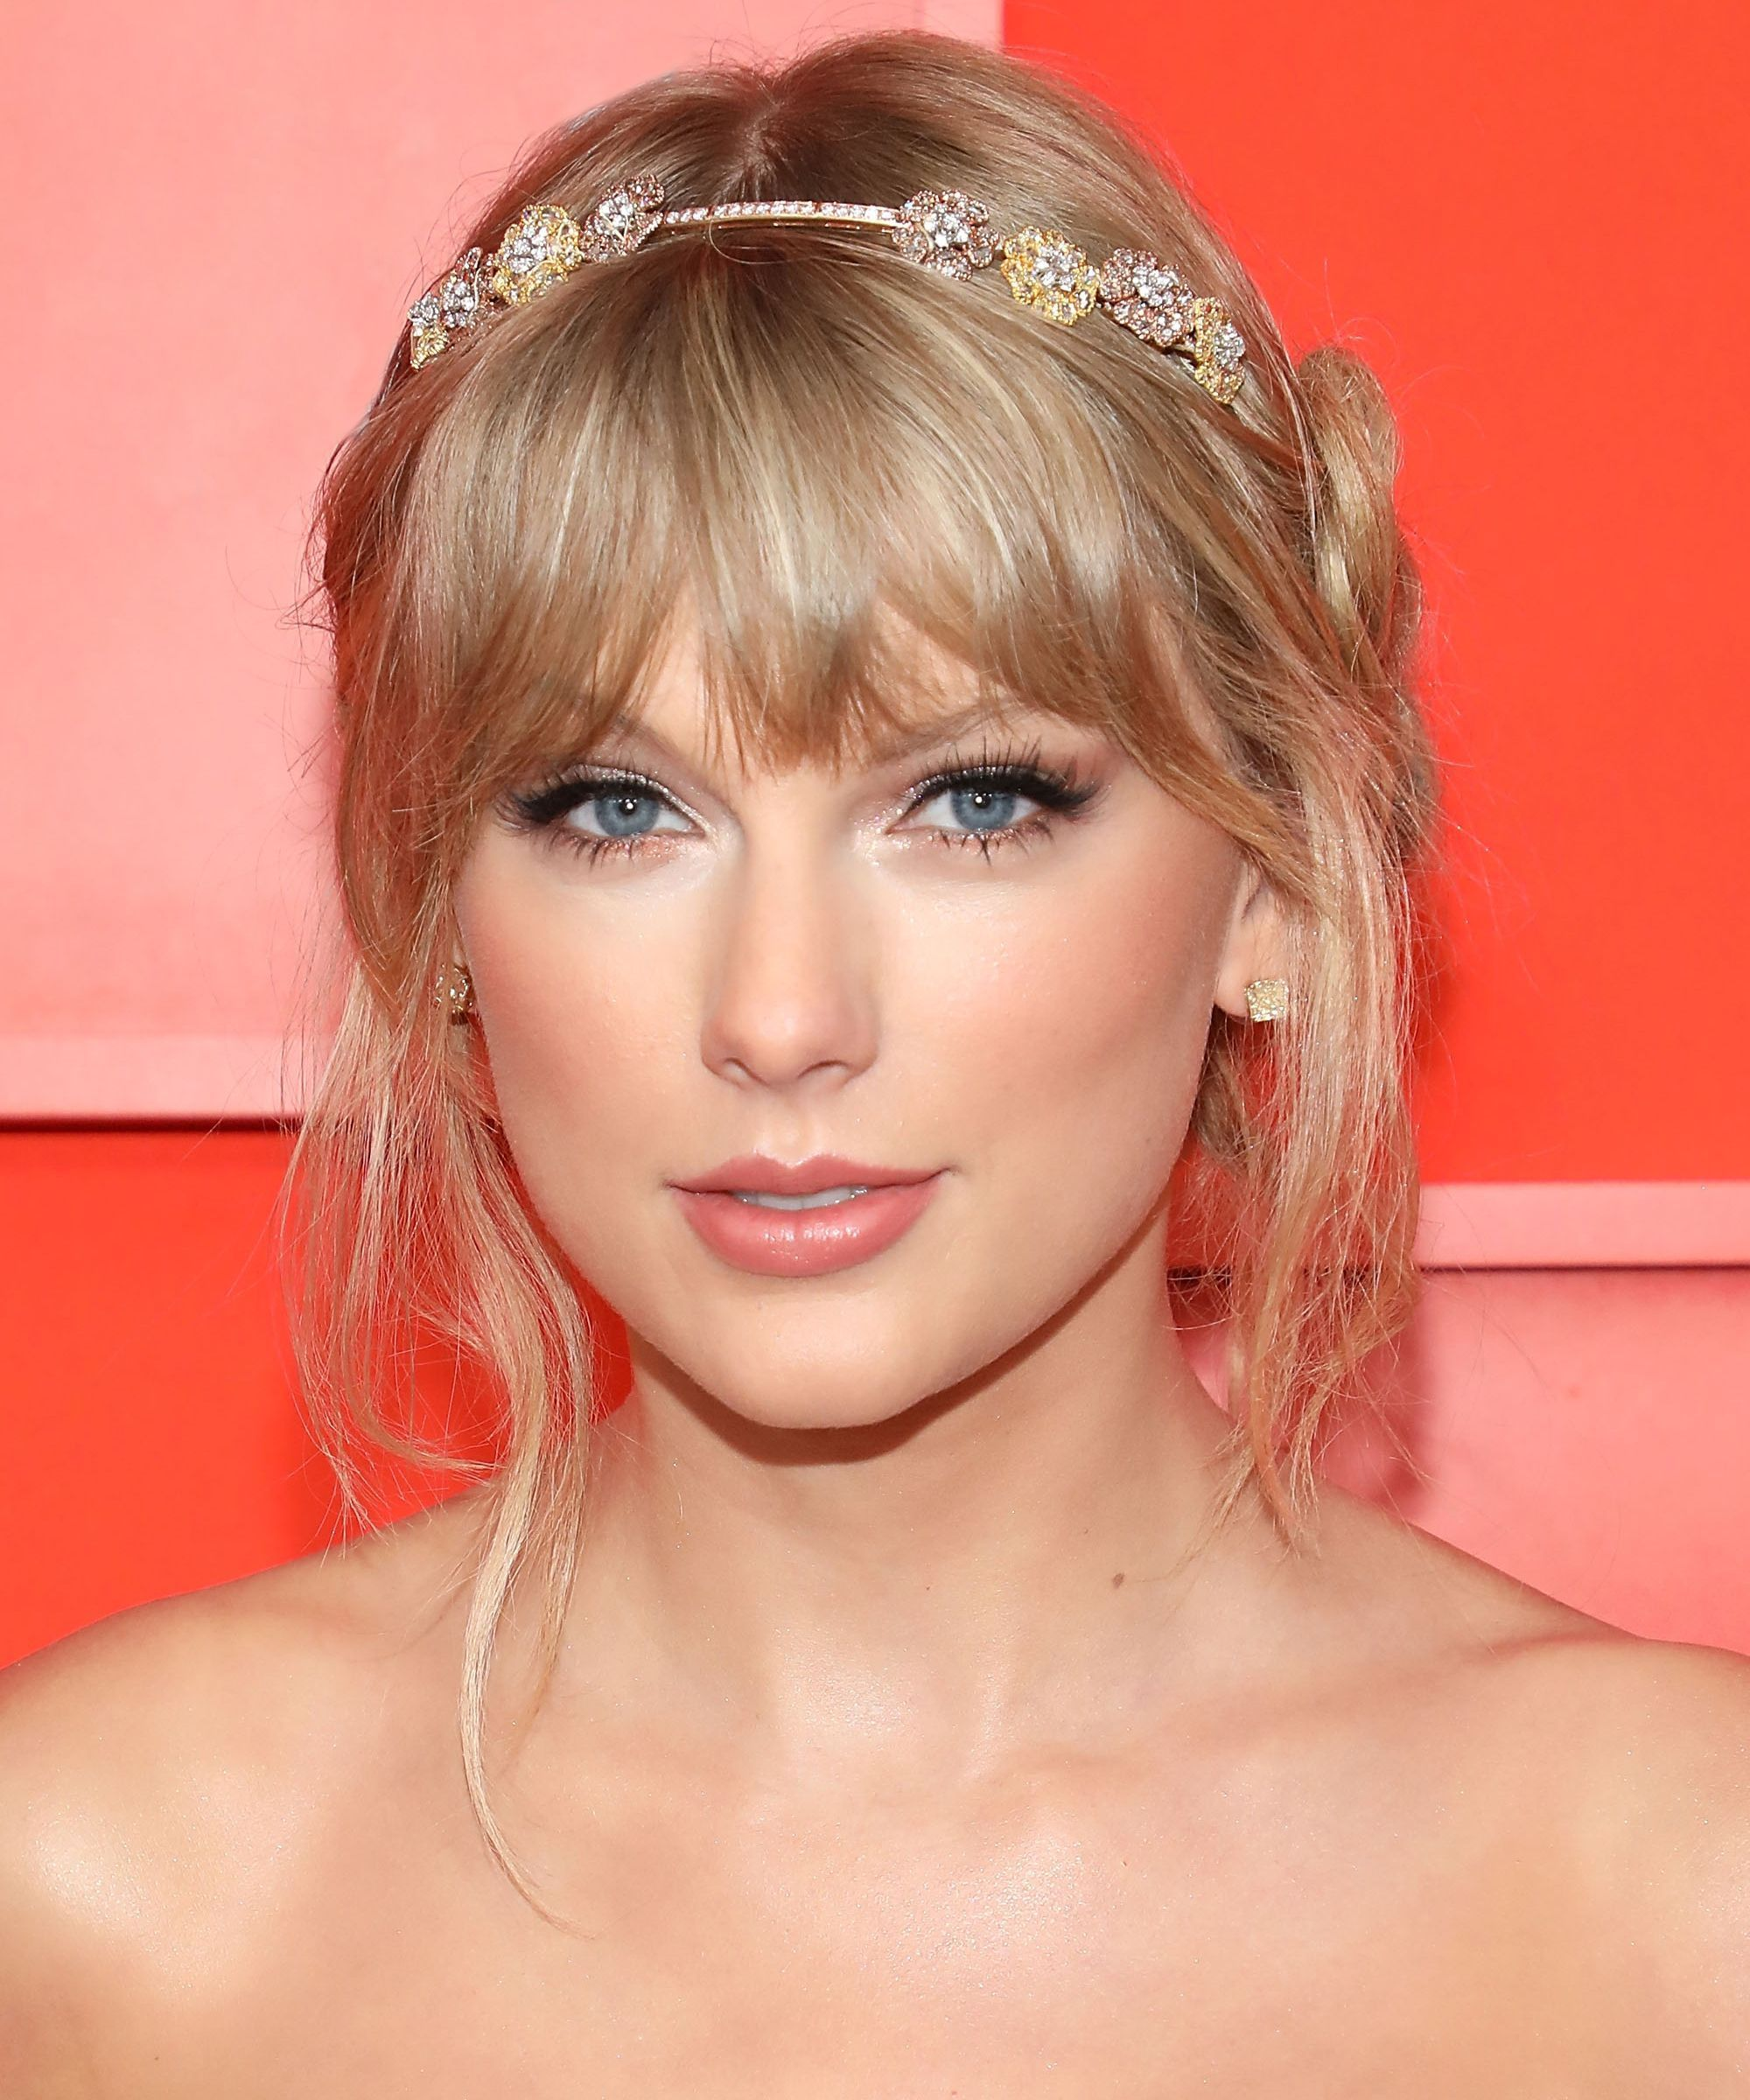 Taylor Swift Went Blue In Her Me Video Fans Are Freaking Out Taylor Swift Hair Taylor Swift Bangs Hairstyles With Bangs